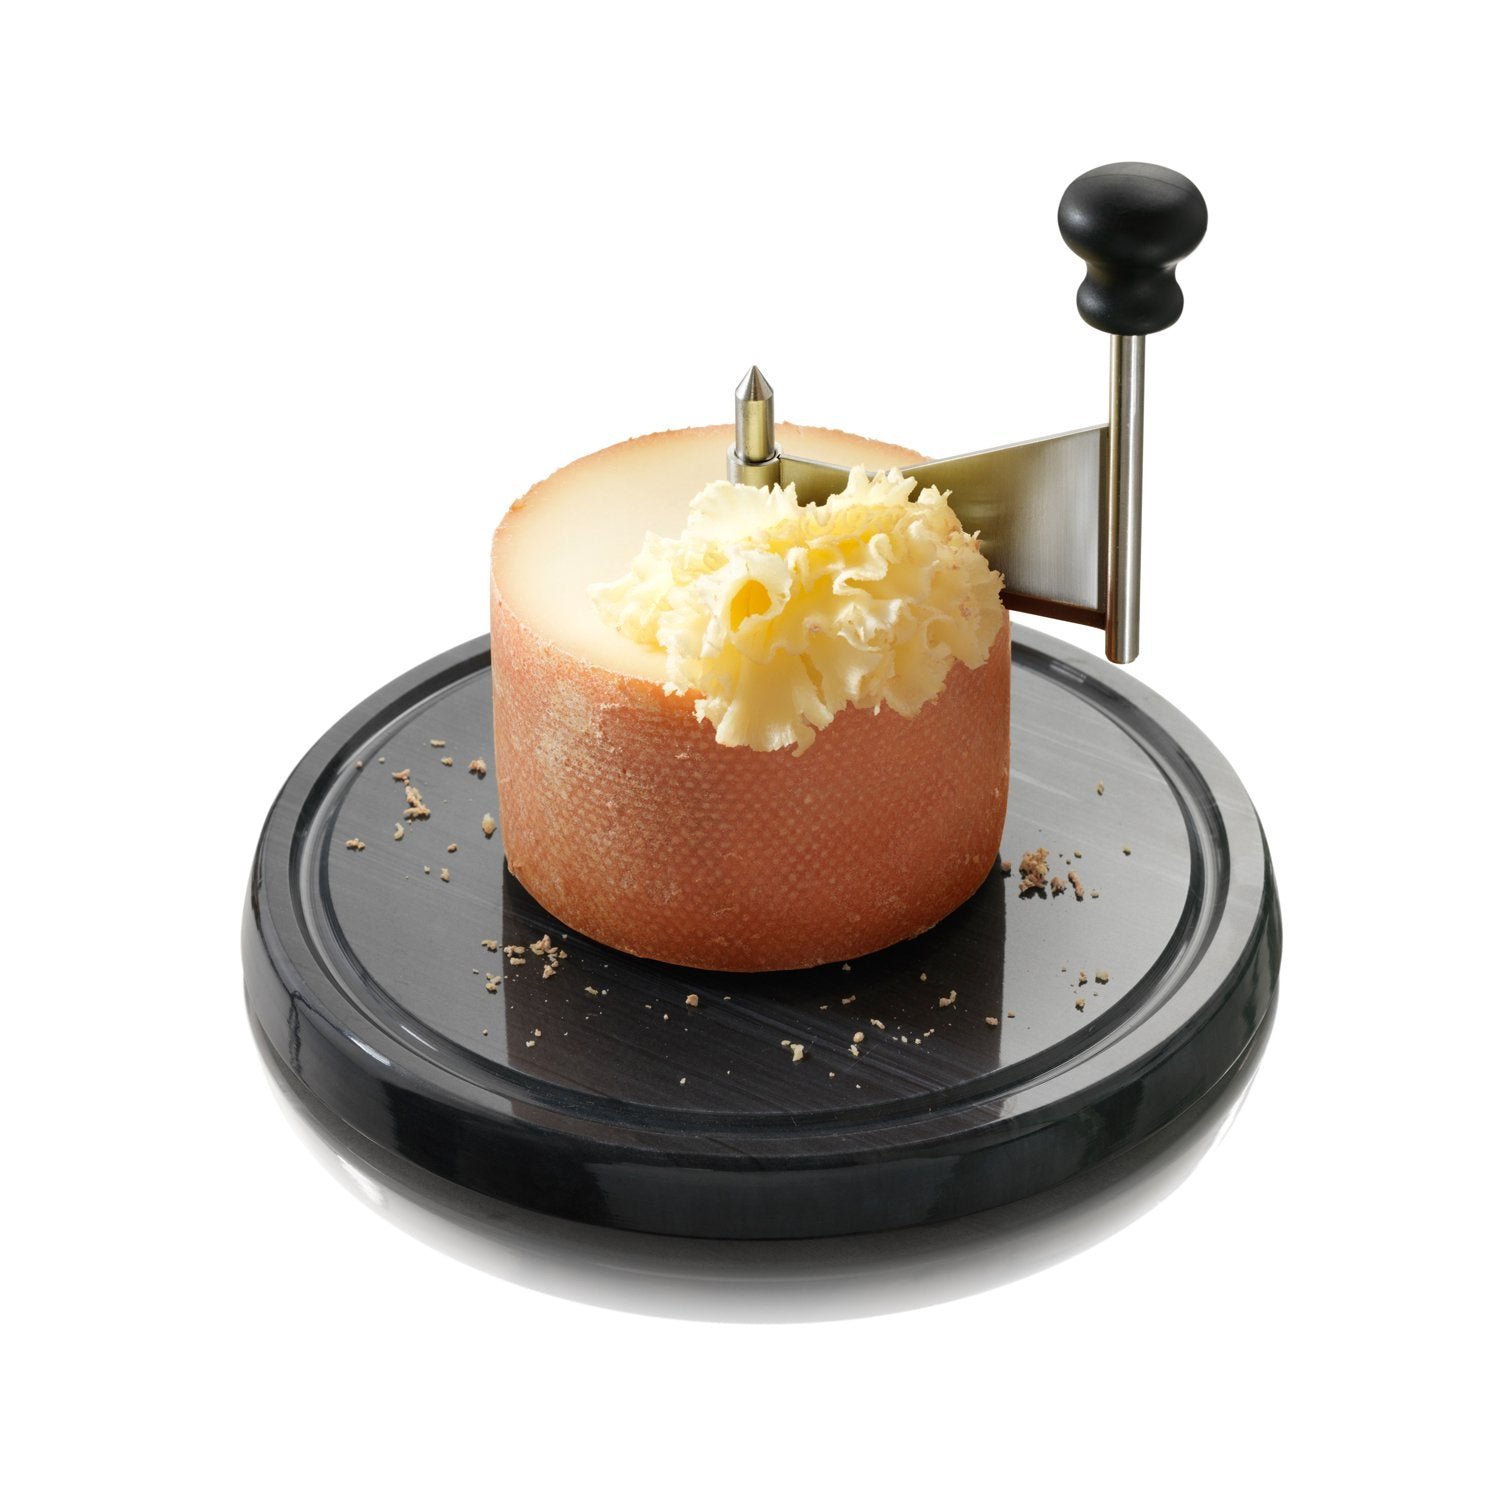 Pre-Order / Special offer Tête de Moine + Cheese Cutter - SOLD OUT